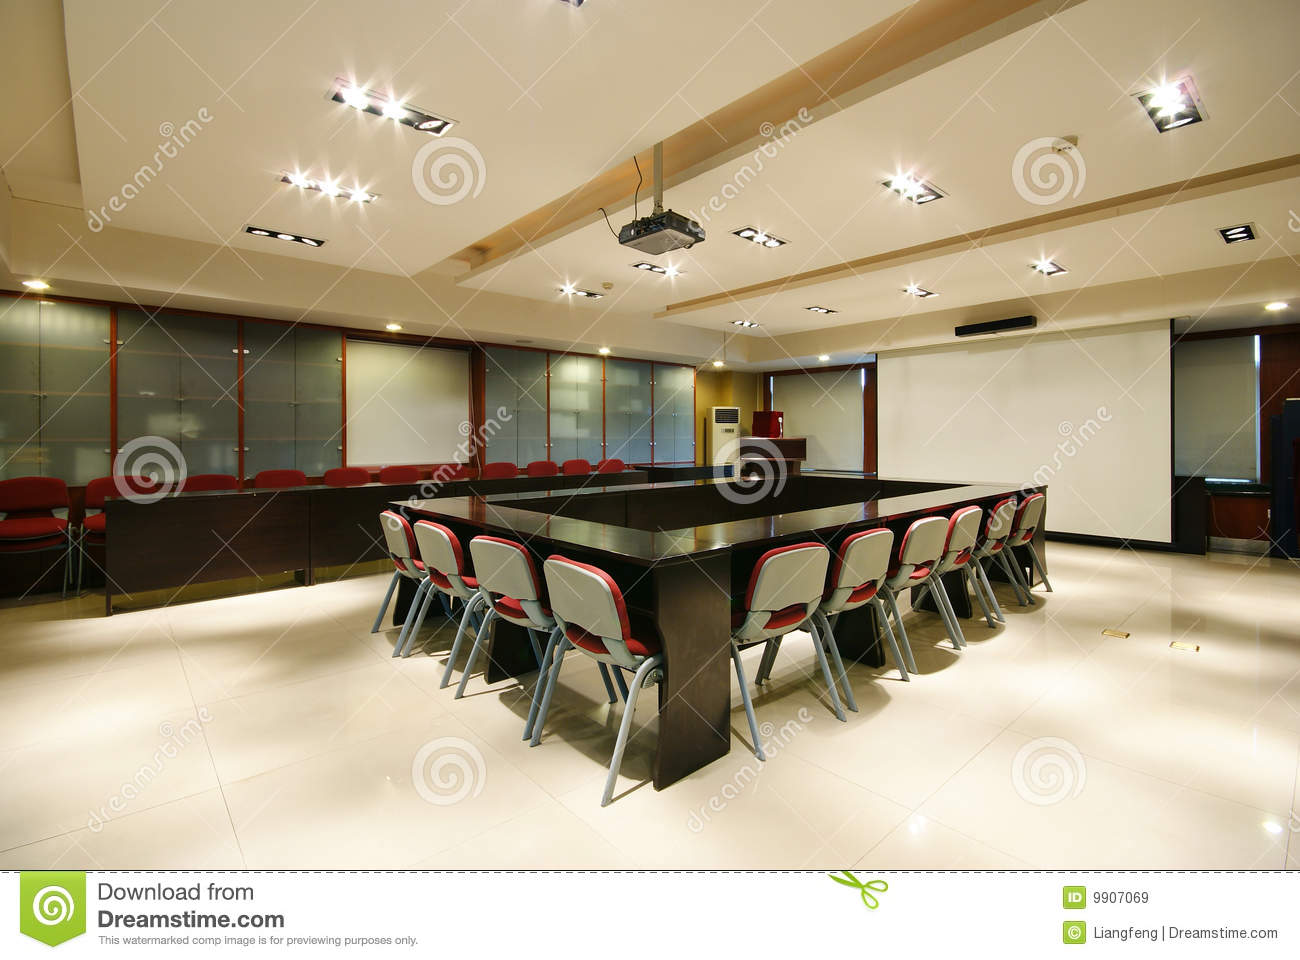 Company tidy office Professional Modern Company Conference Room Dreamstime Company Tidy Office Stock Image Image Of Office Furniture 9907069